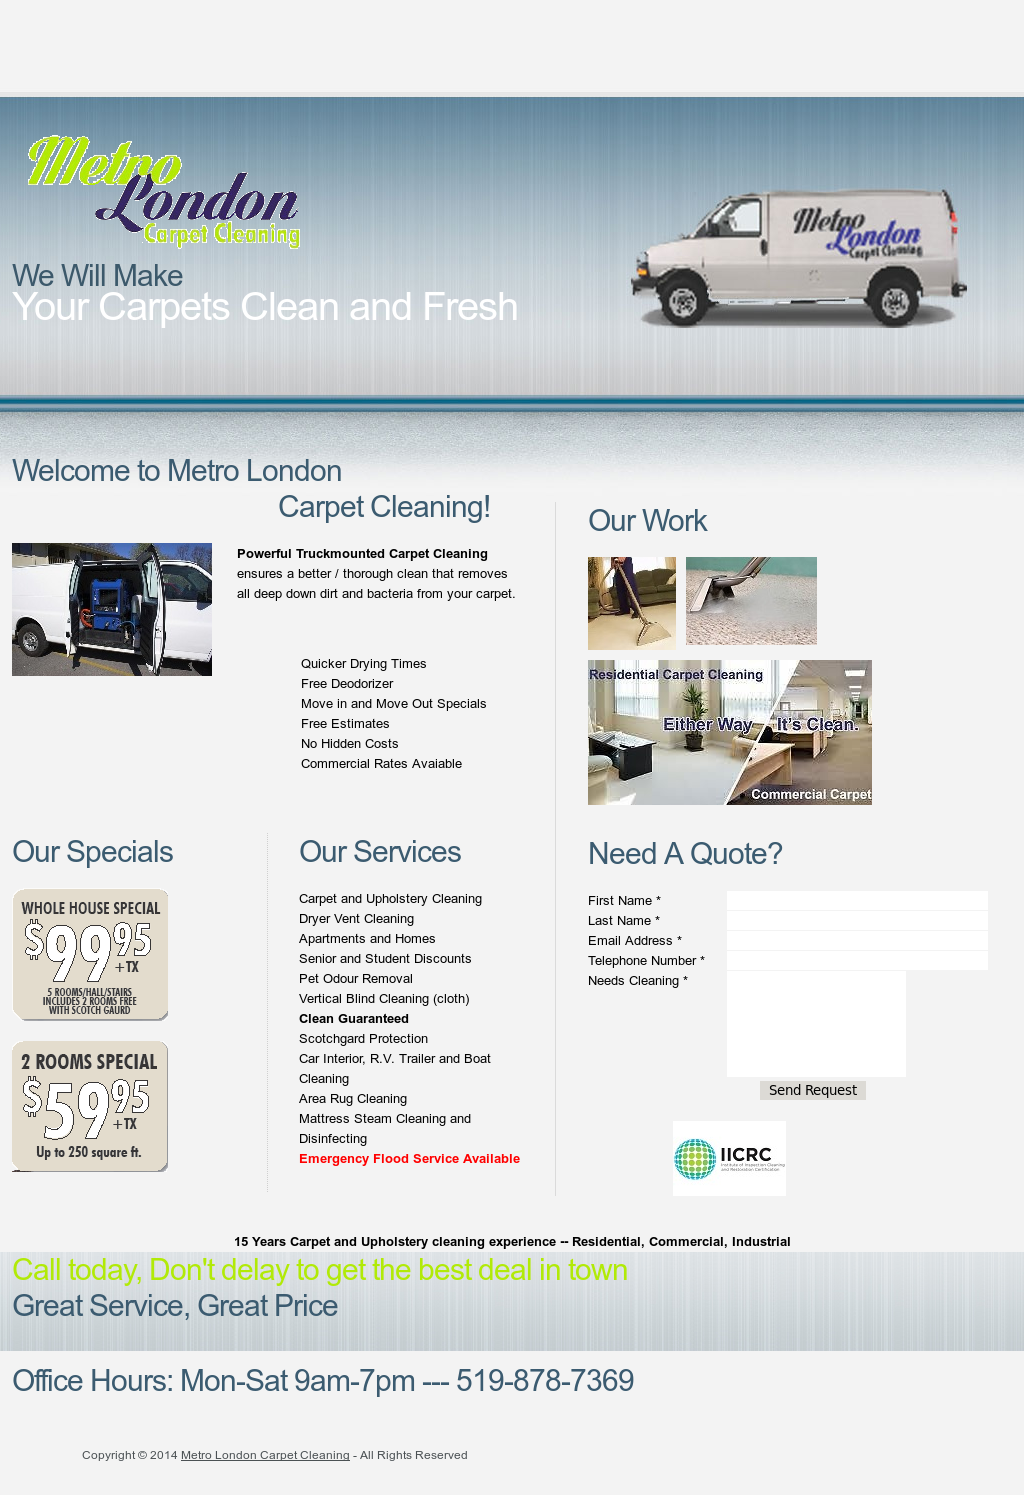 Metro London Carpet Cleaning Competitors, Revenue and